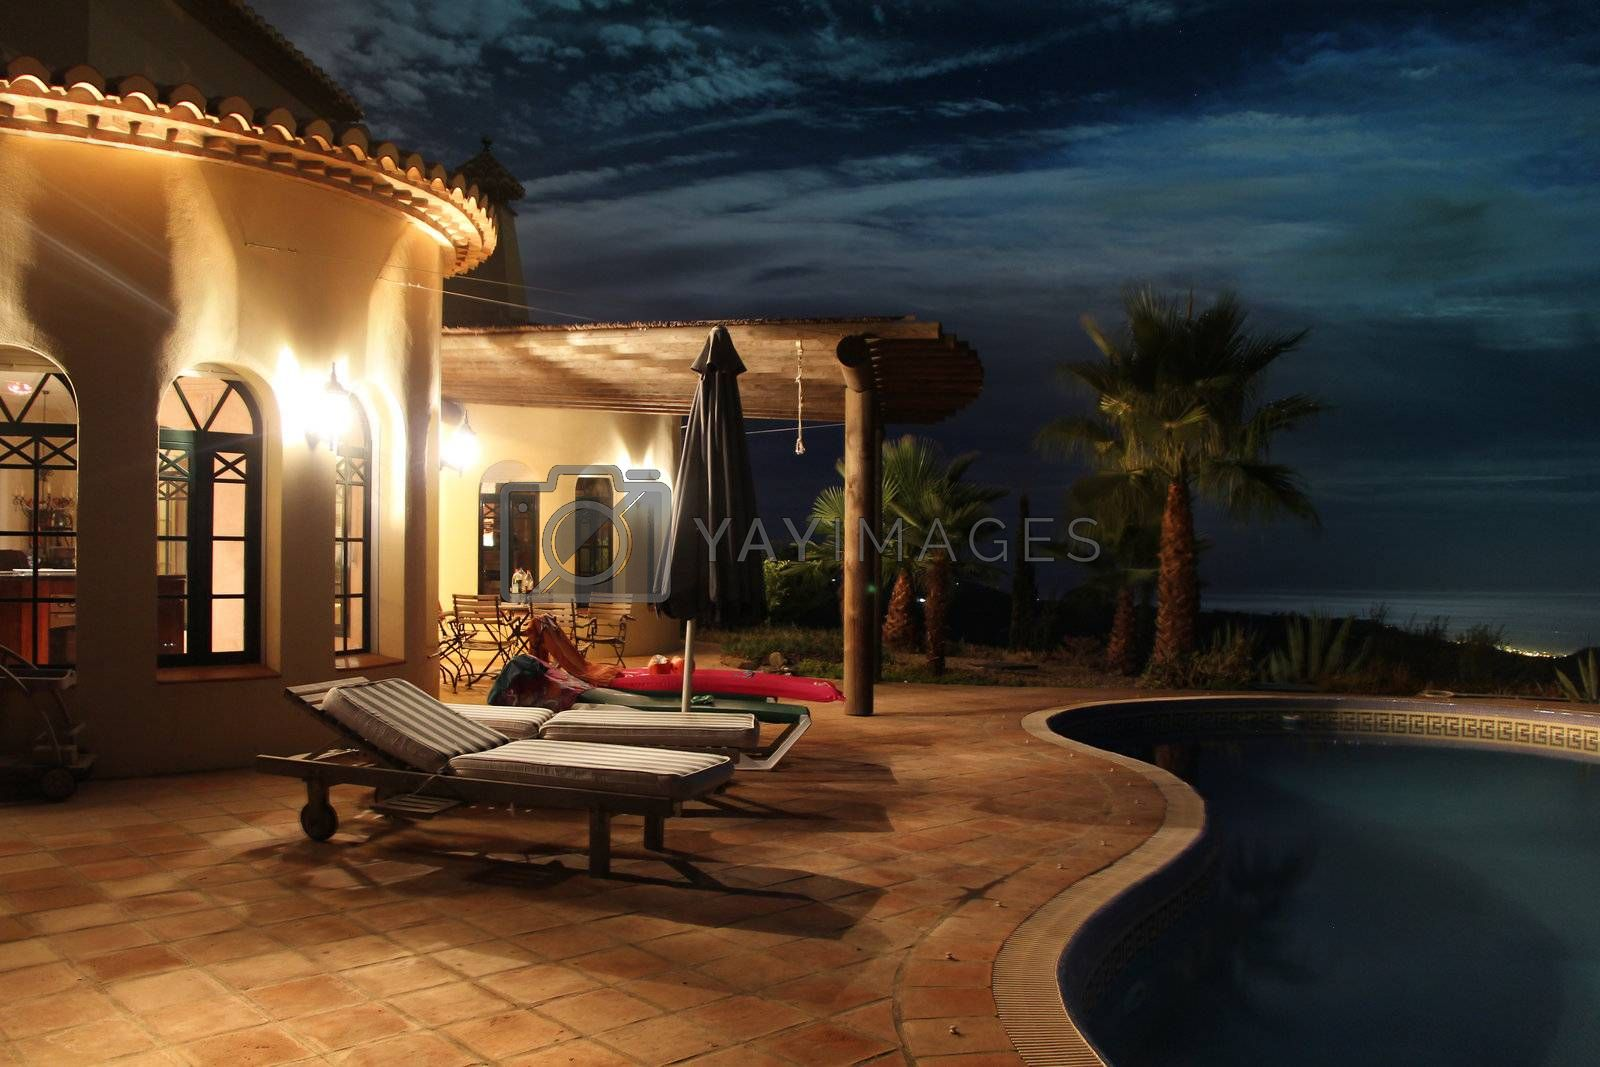 south sea facade with nice lights, palms and pool